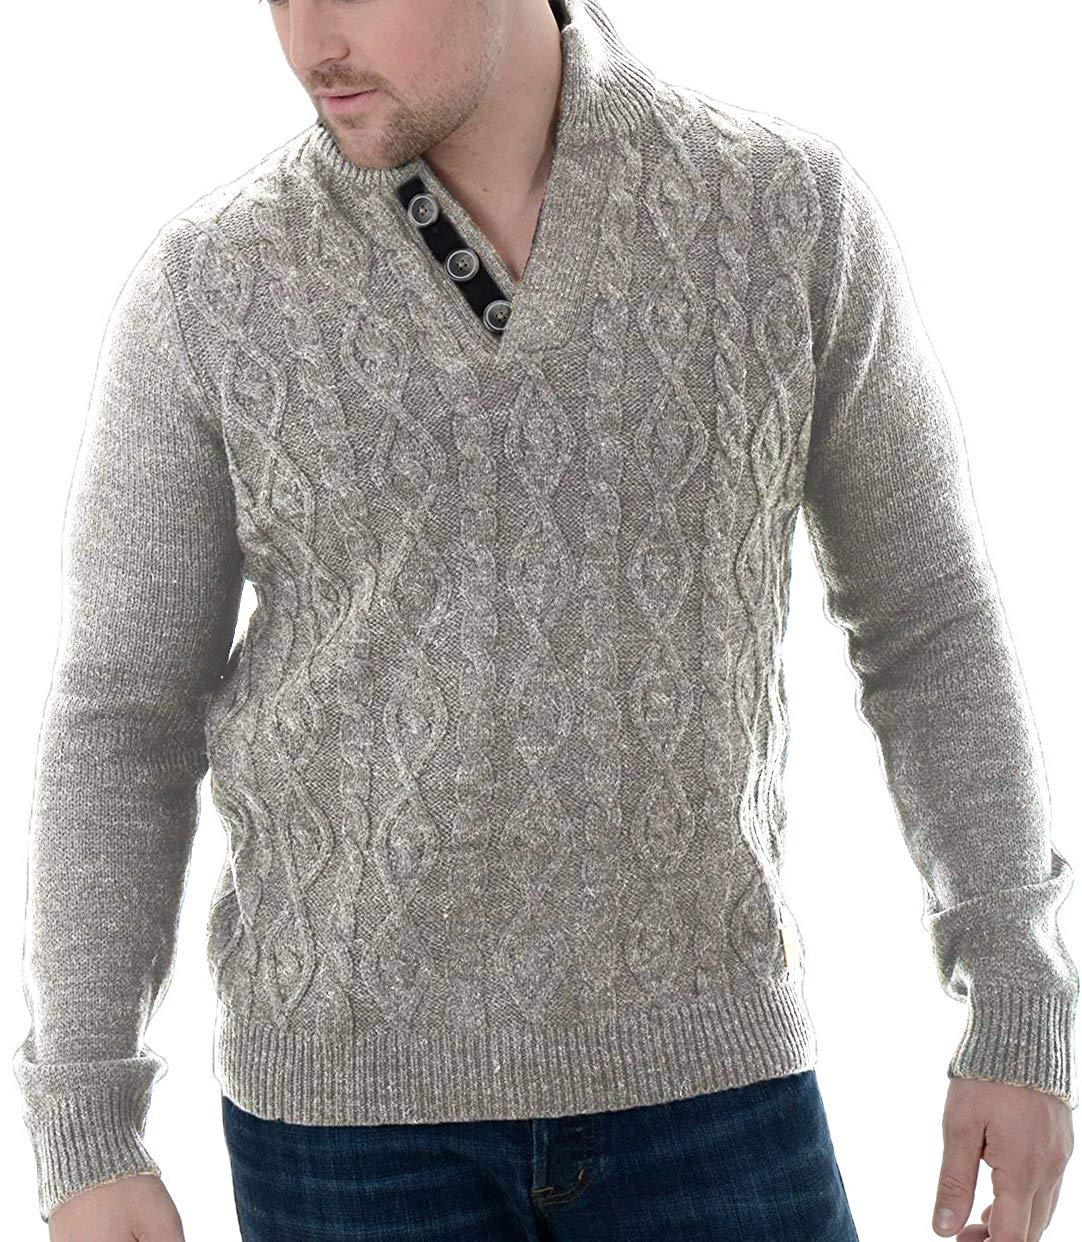 BU2H Men Casual V-Neck Cable Knit Long Sleeve Slim Fit Solid Pullover Sweater